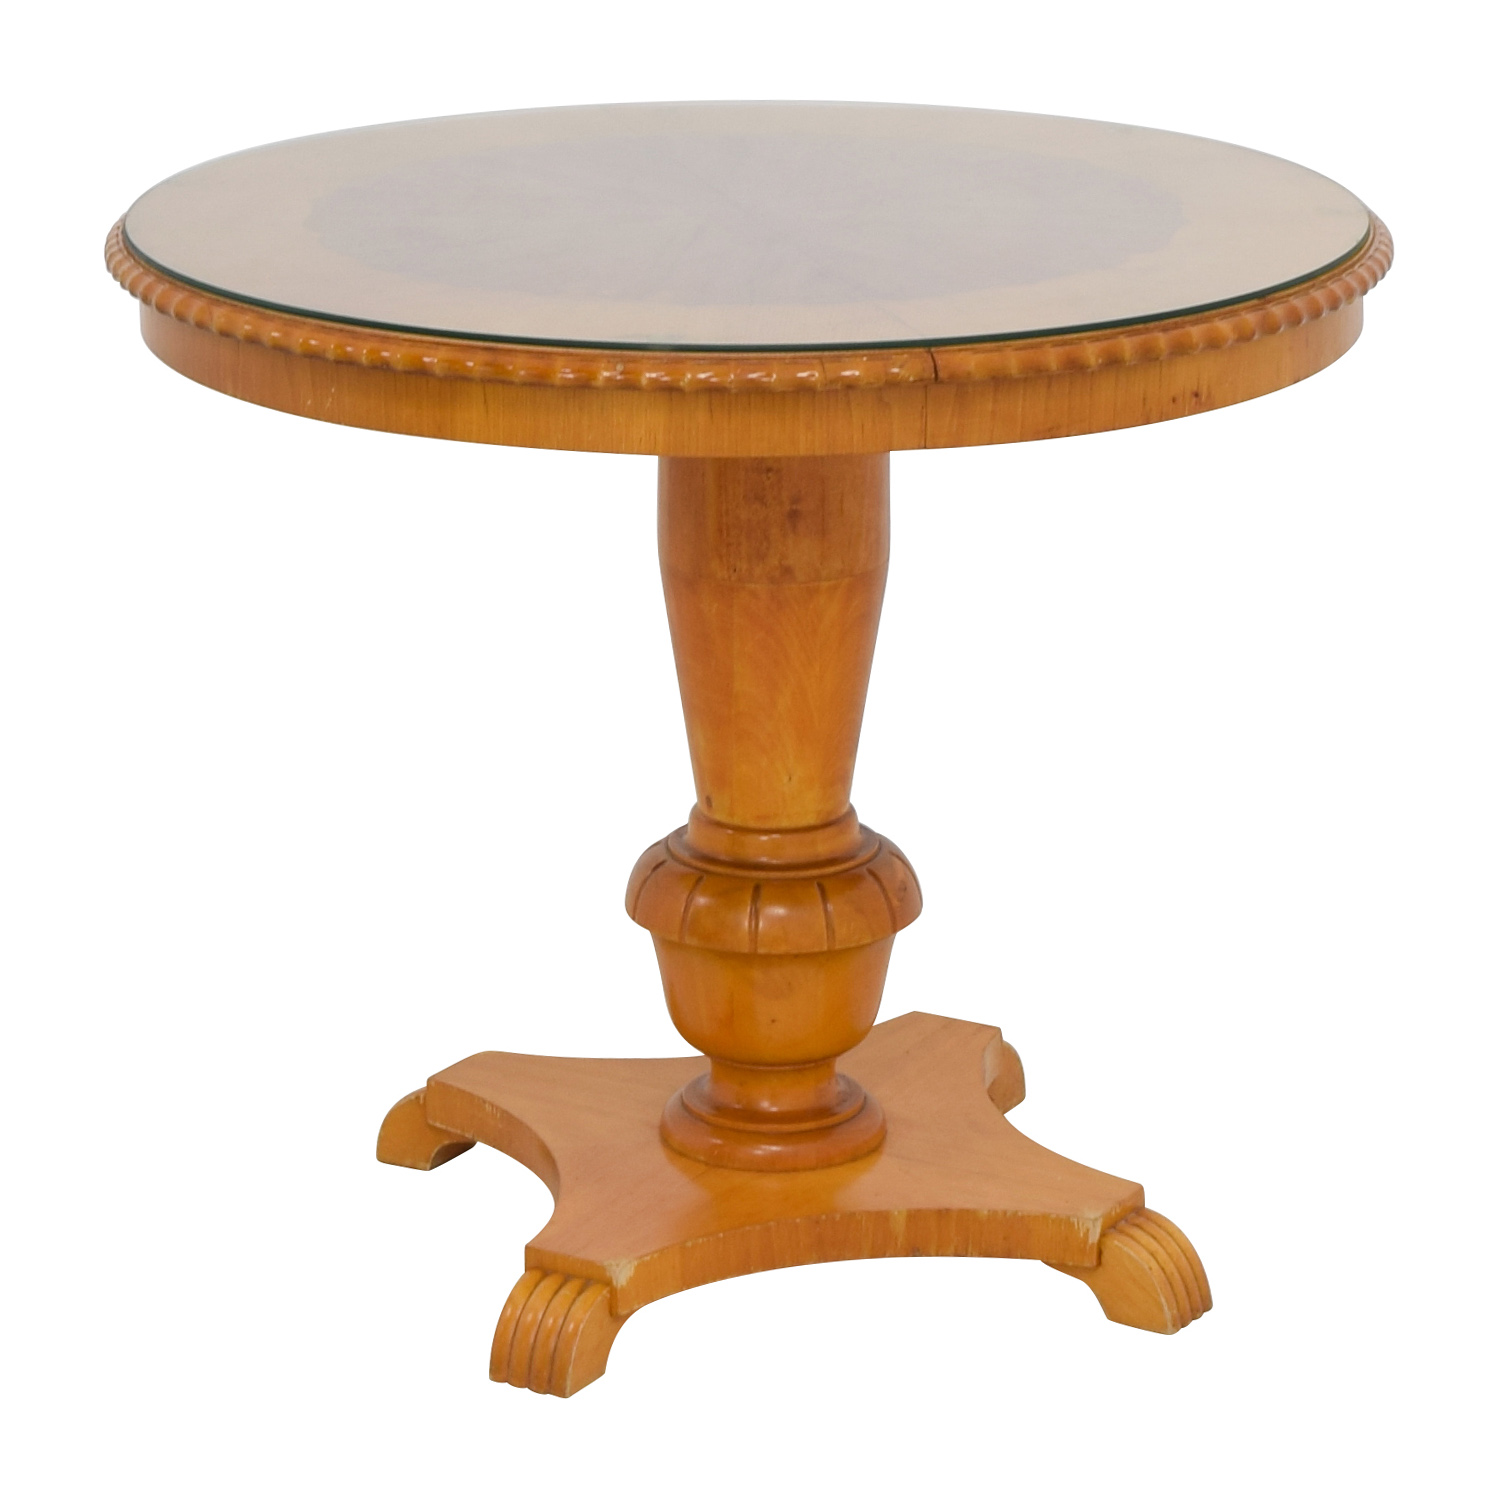 shop Antique Round Wood Dining Table with Glass Top